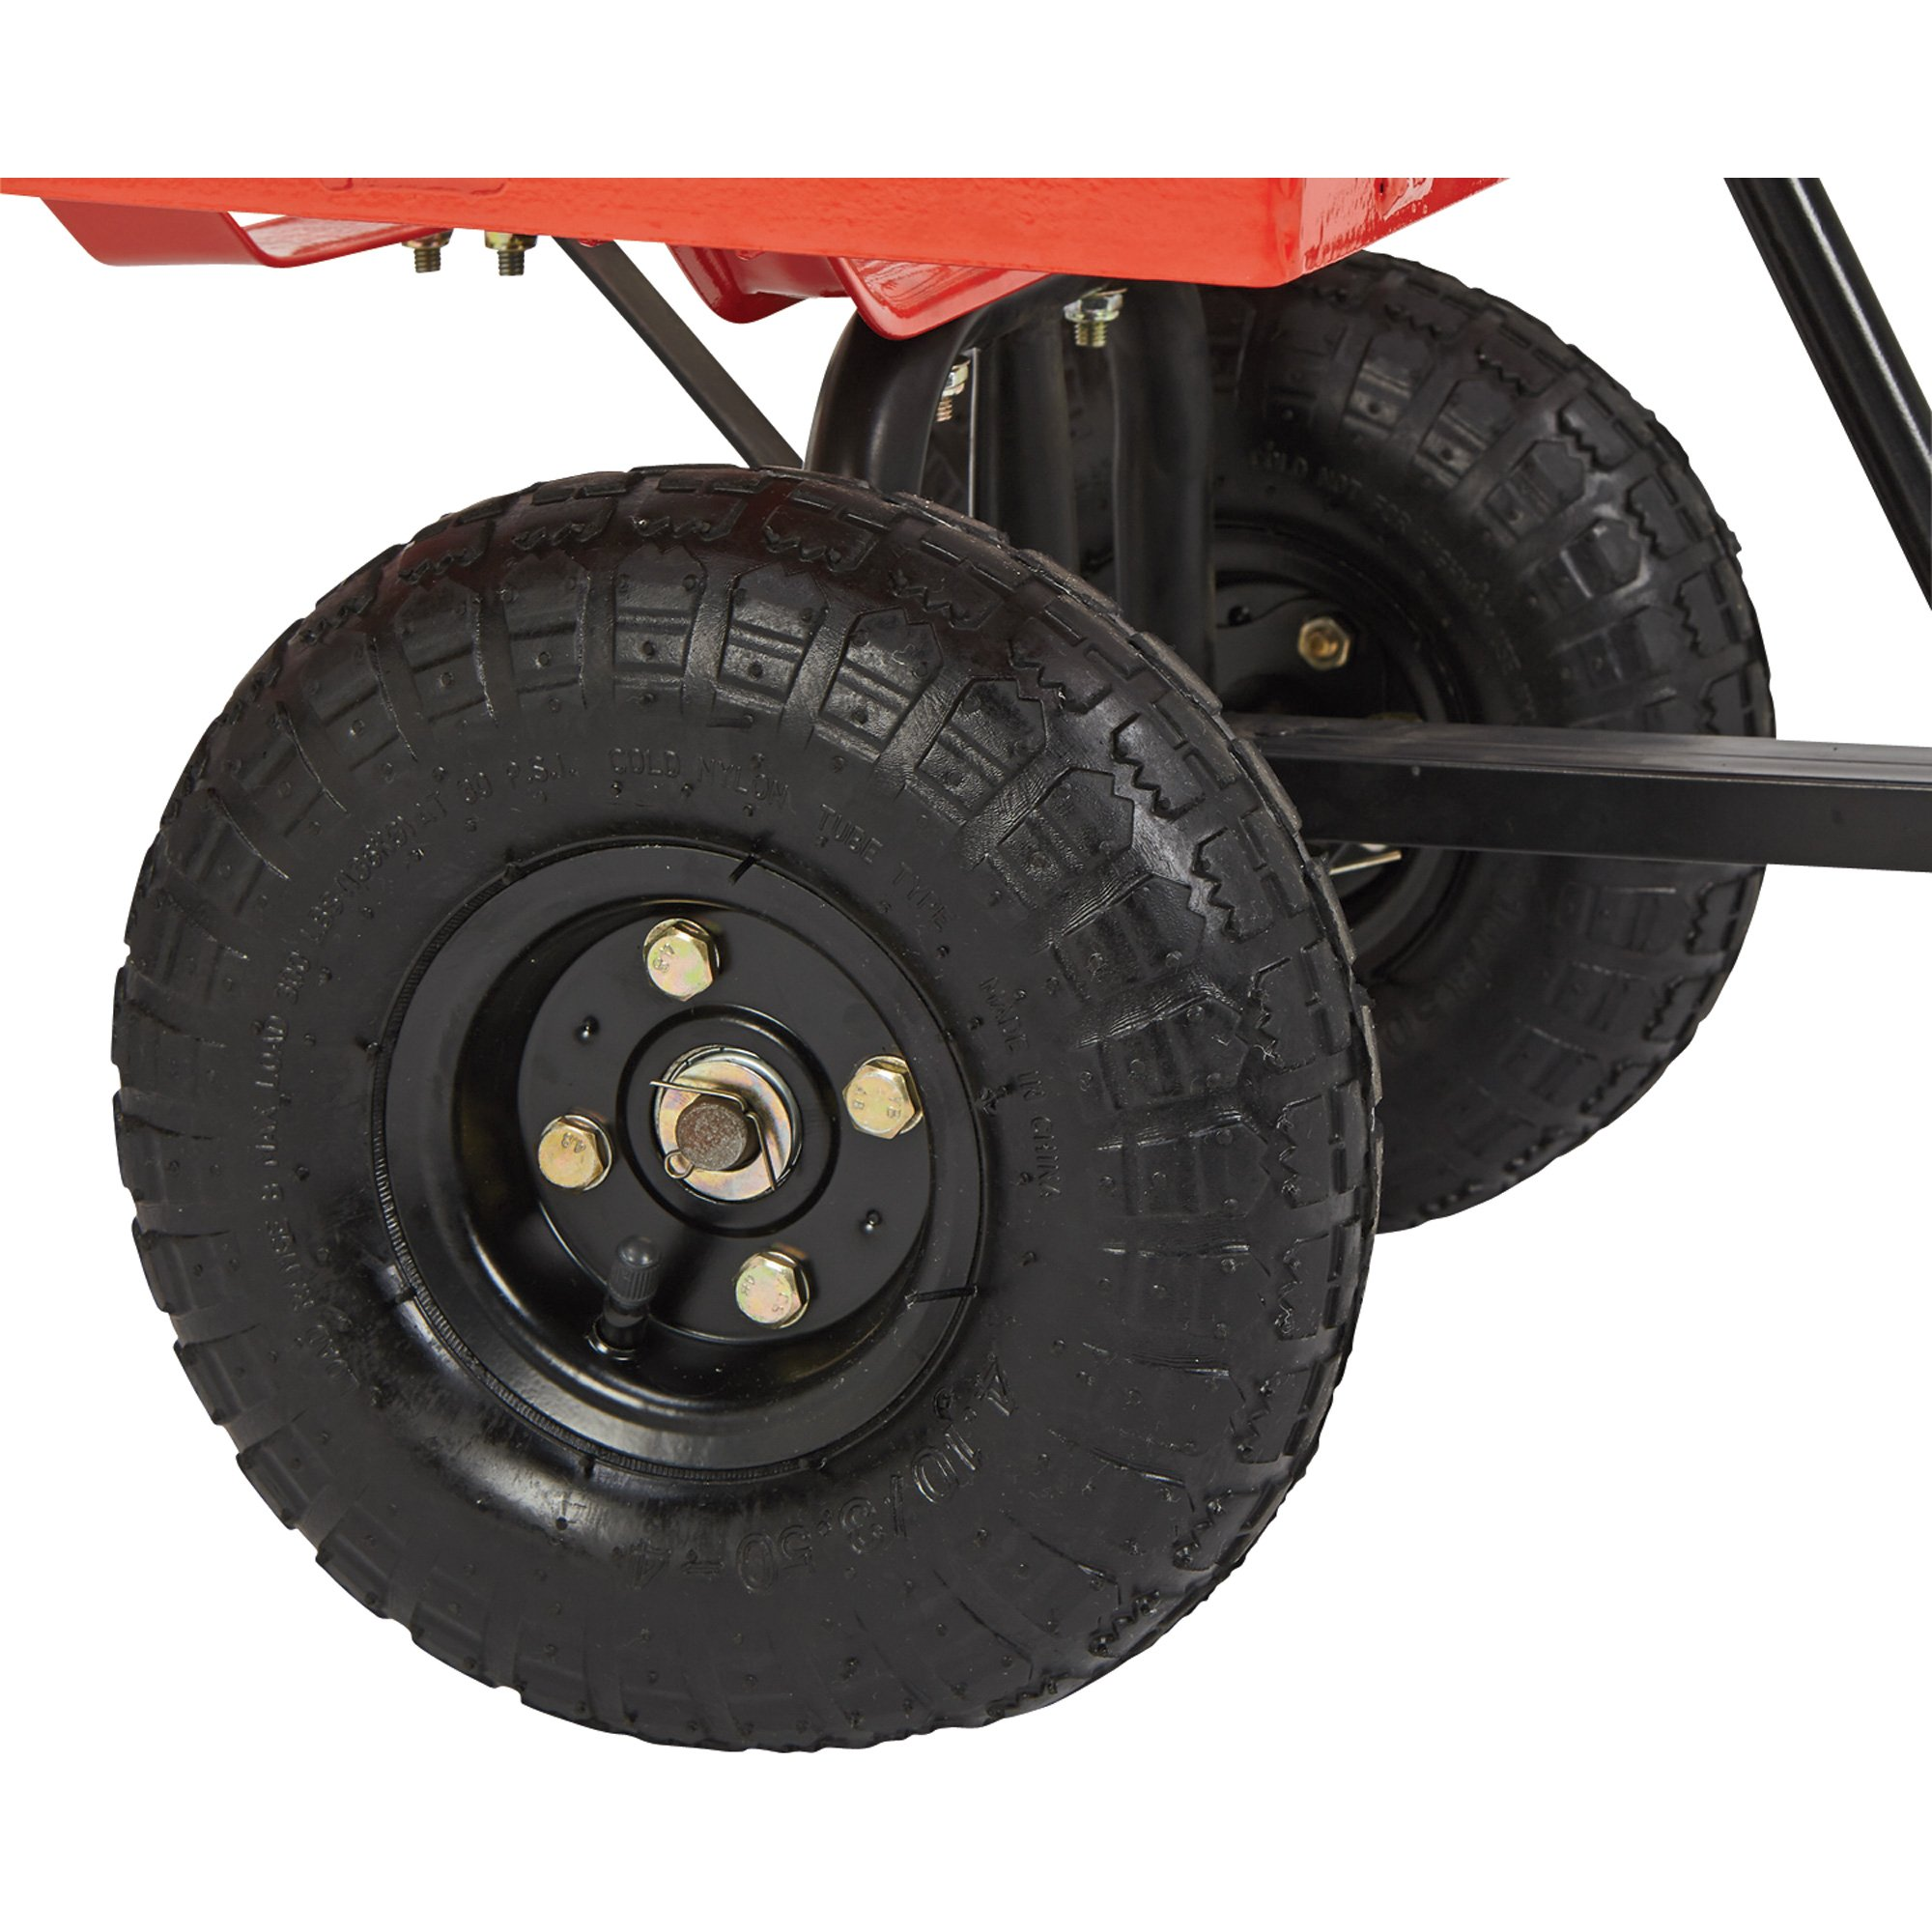 Steel Cart, 34in.L x 18in.W, 400-Lb. Capacity by Ironton (Image #5)